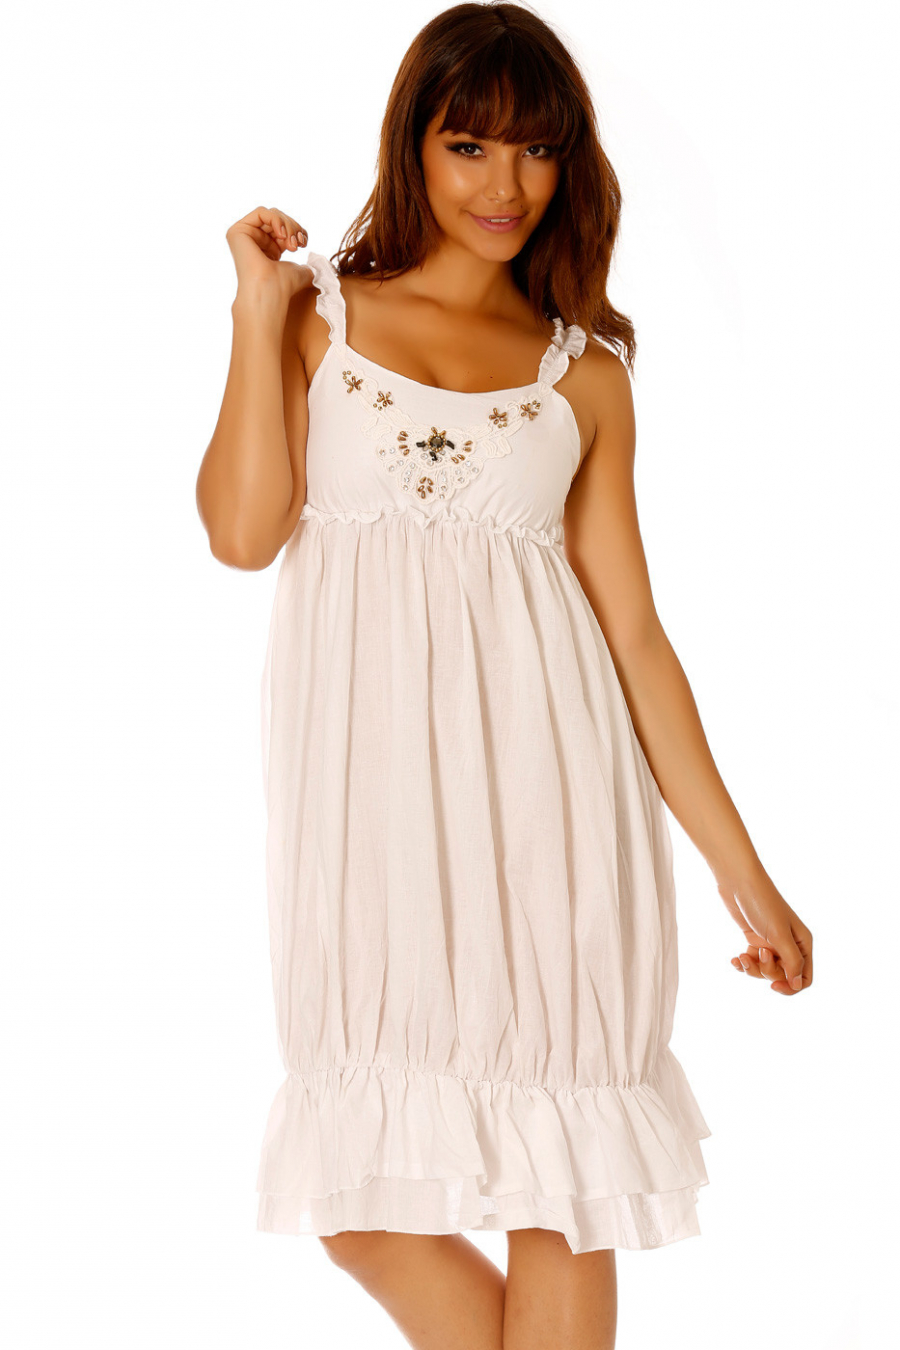 White dress with strap and accessory on the chest. Female SM758